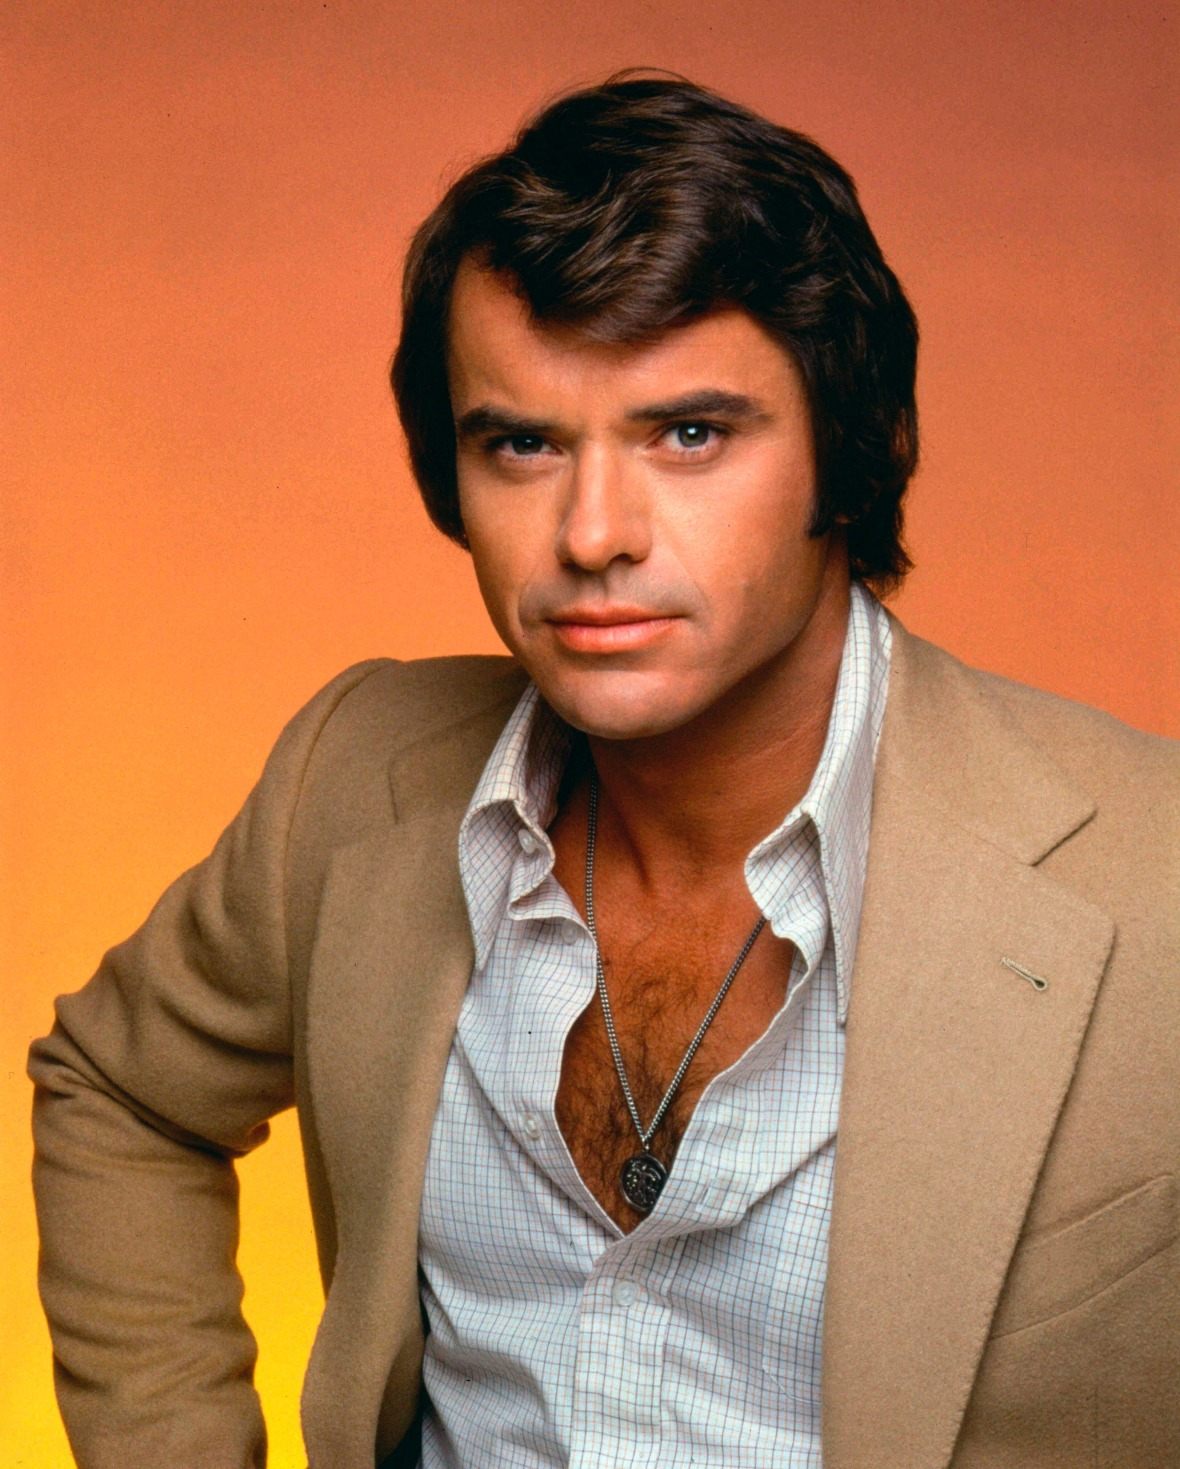 Robert Urich Headshot